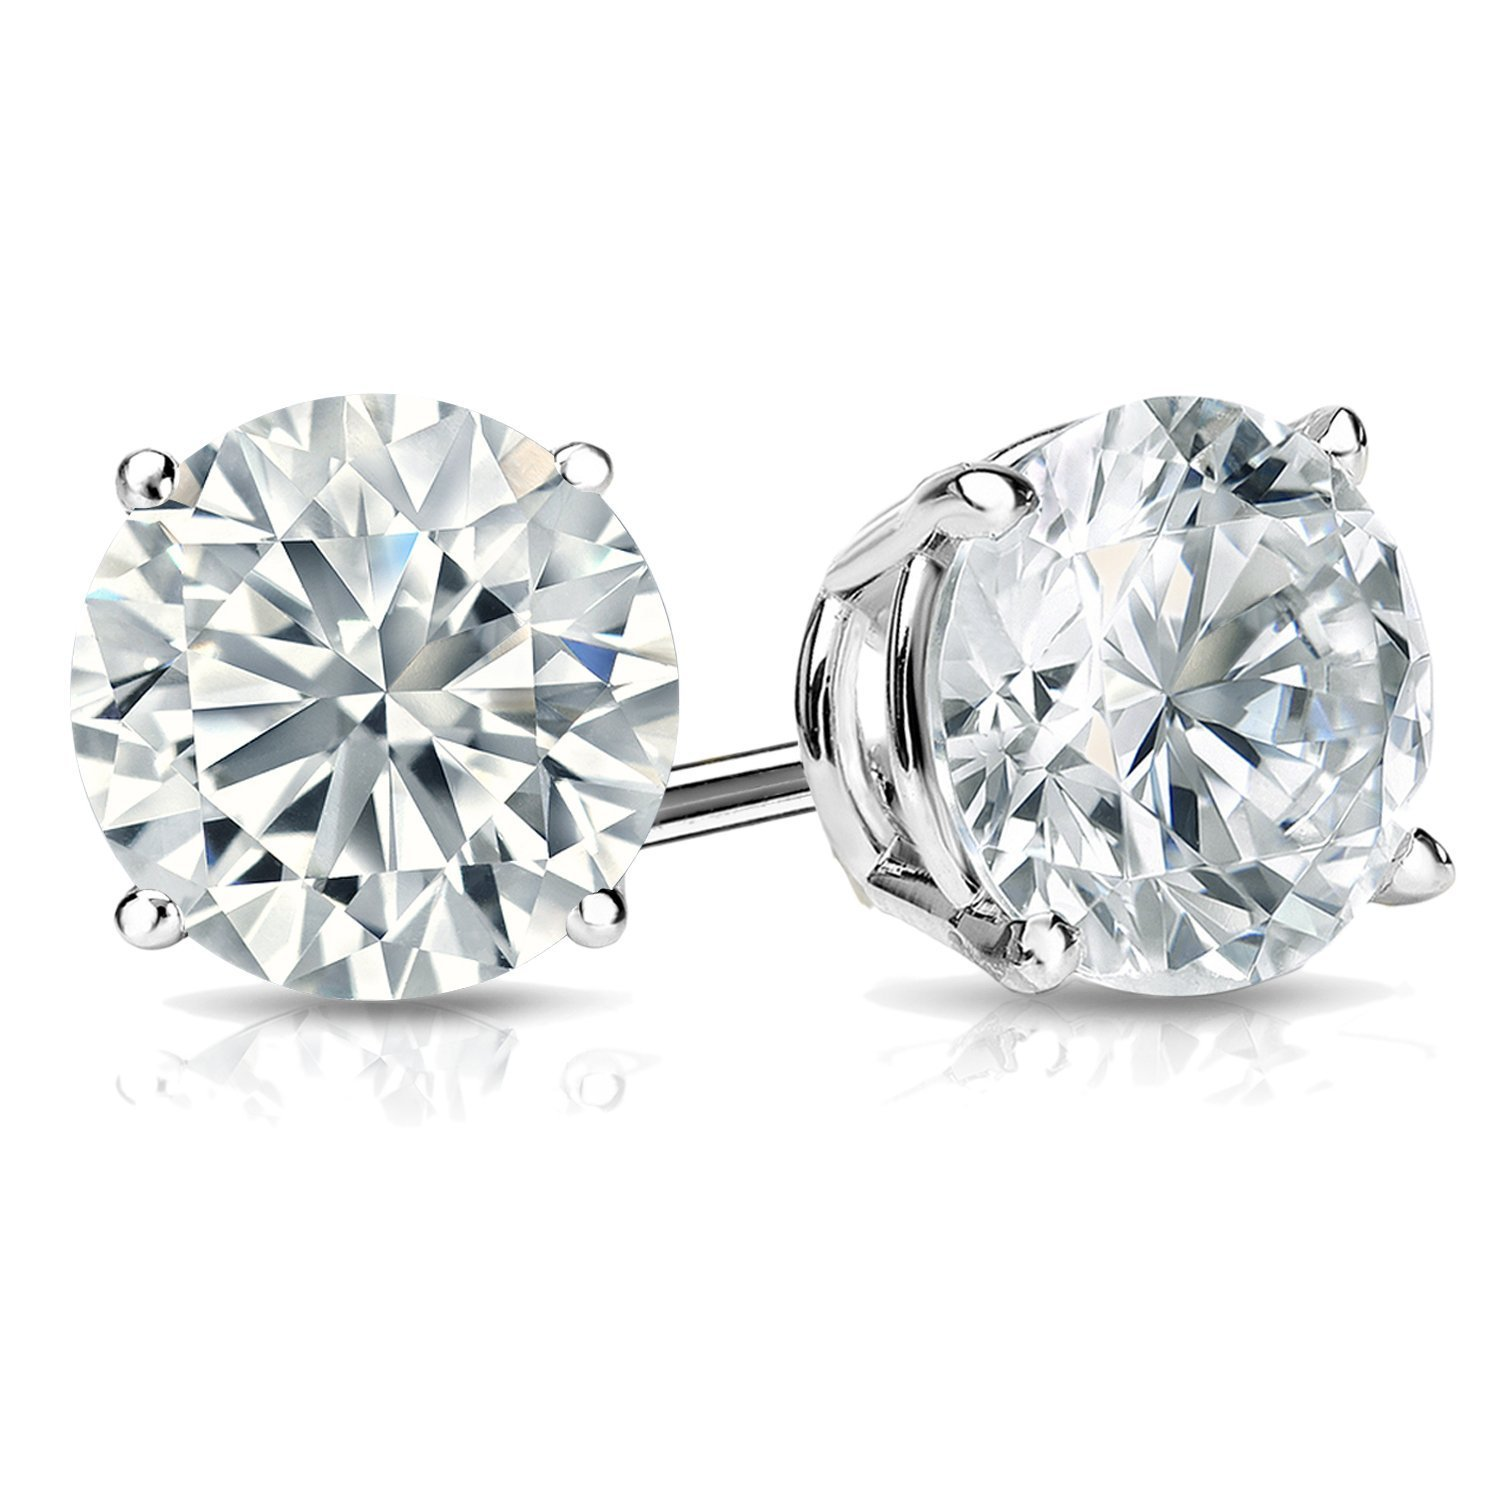 2ct Solitaire Diamond Stud Earrings 14k White Gold Screw Back (G Color SI1-SI2 Clarity)